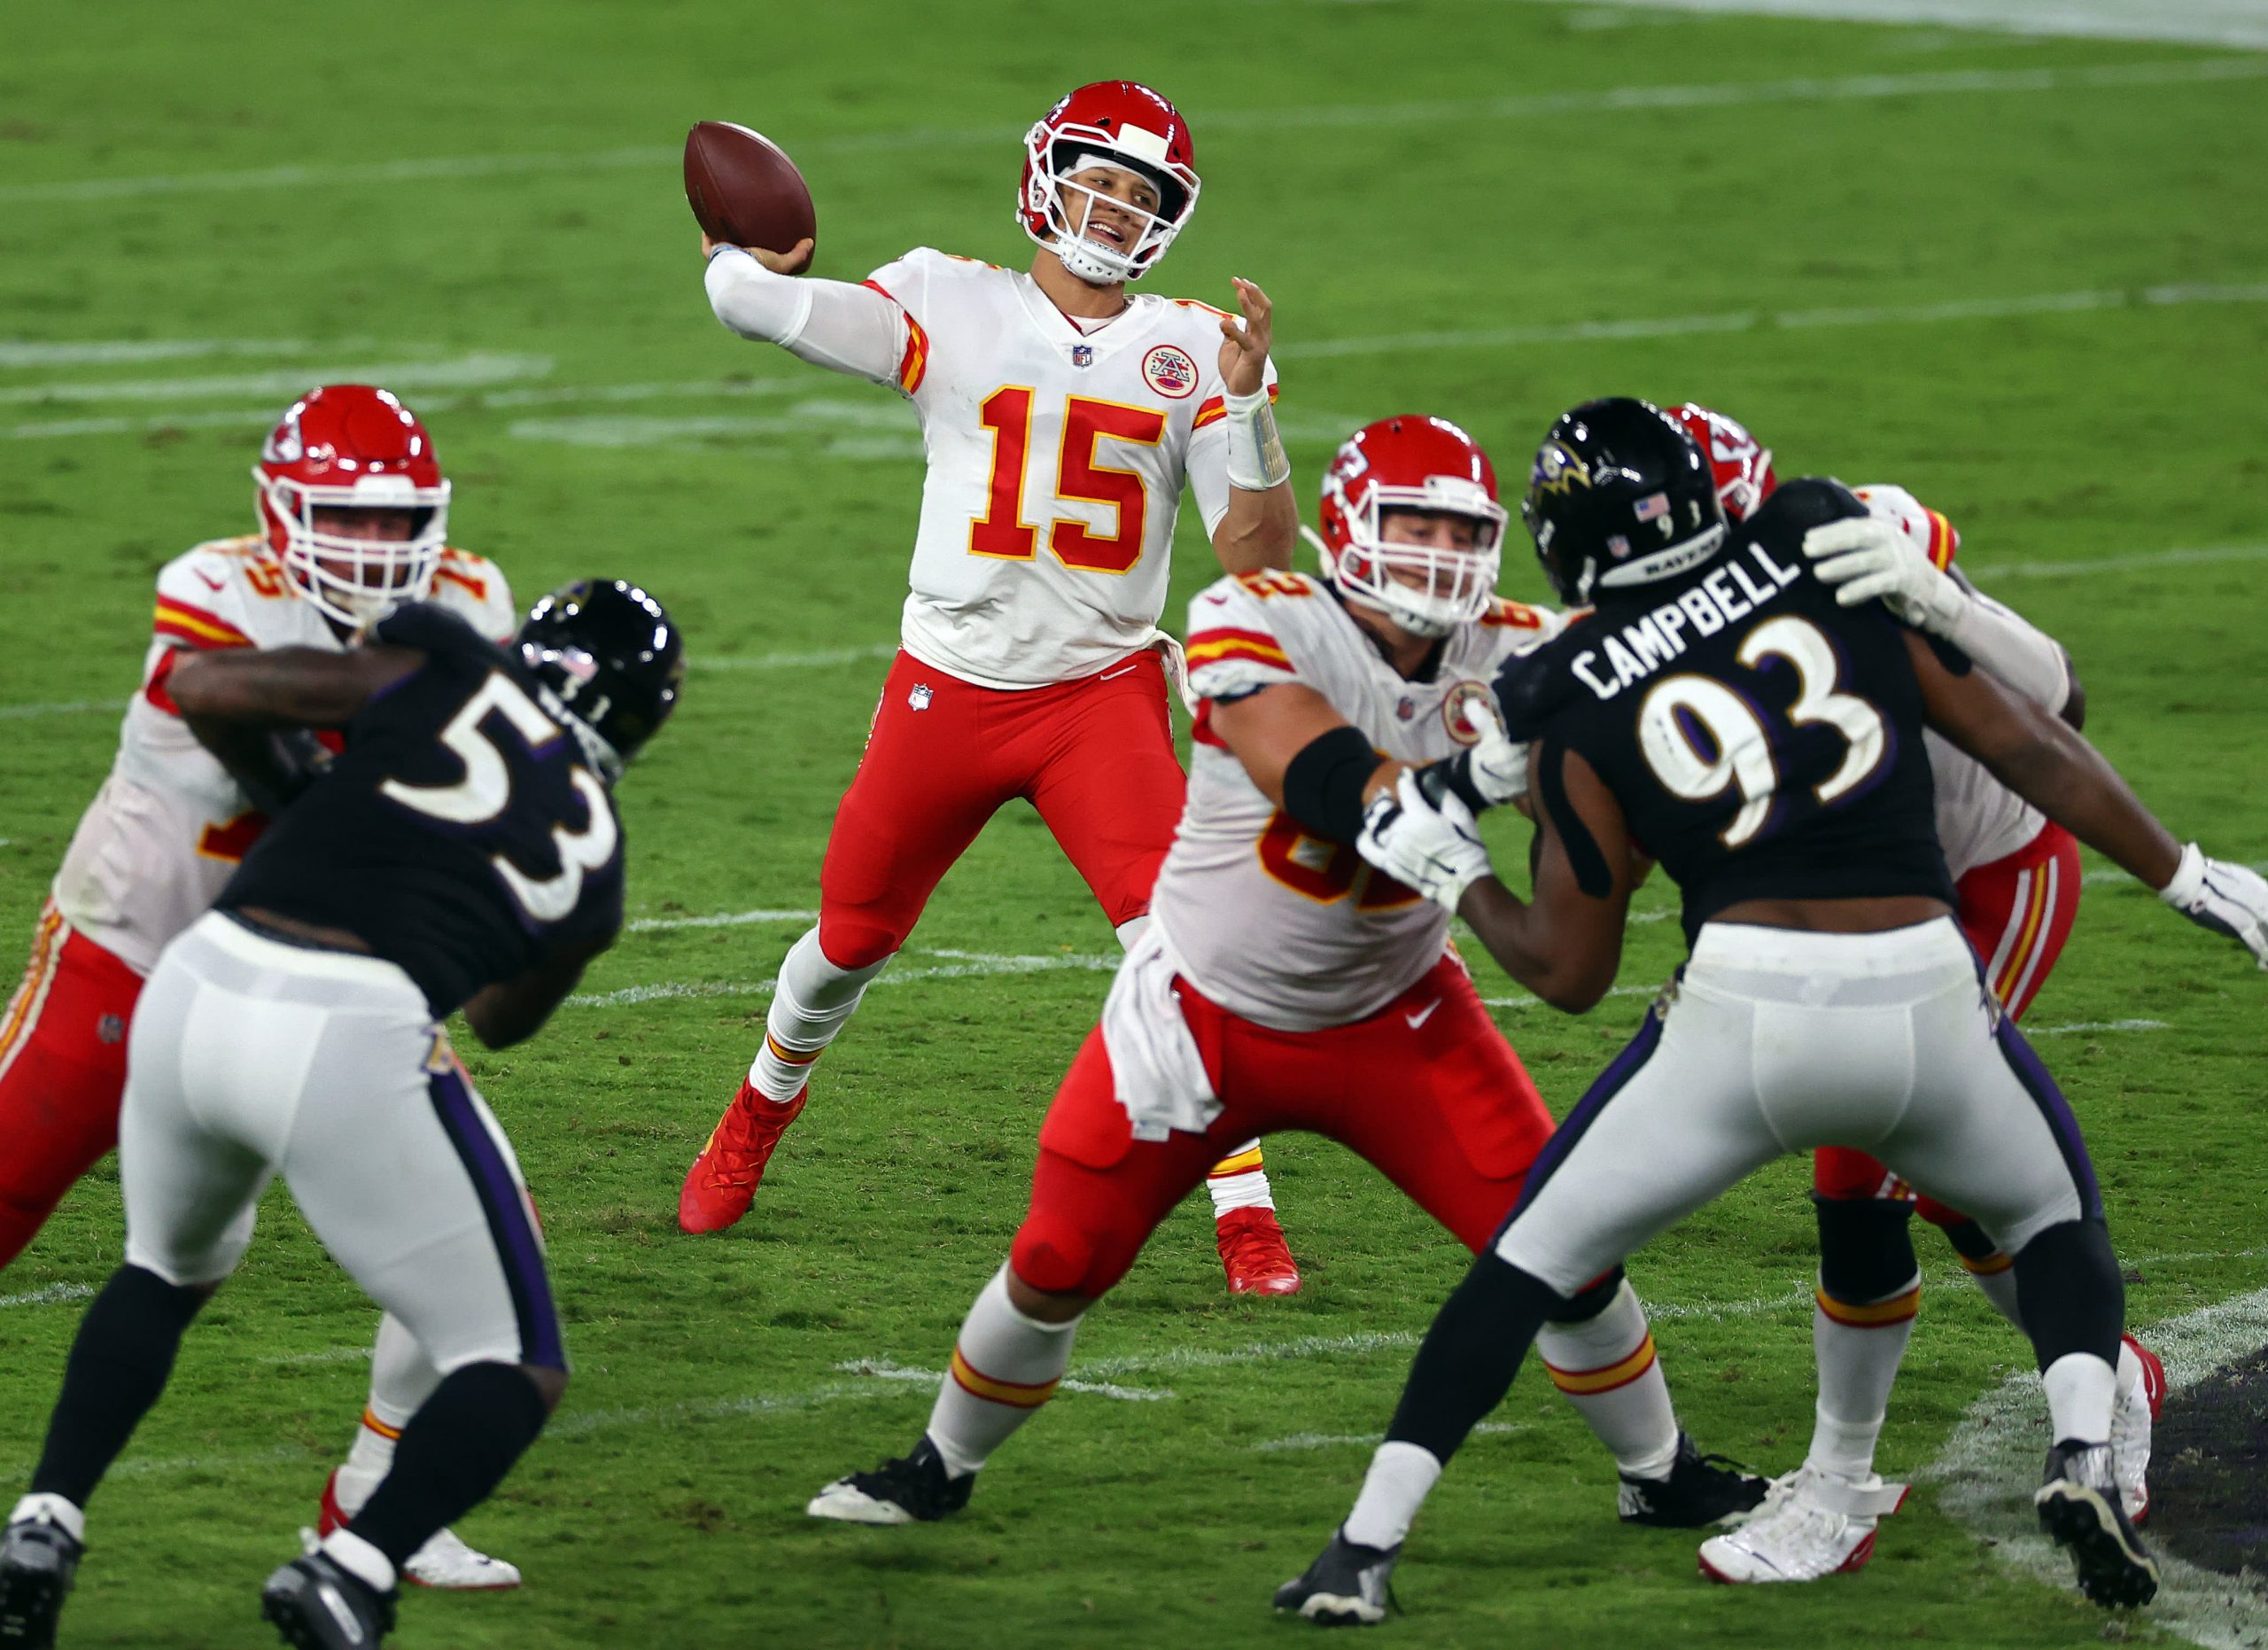 Hyperice lands NFL deal as it moves closer to a $1 billion valuation